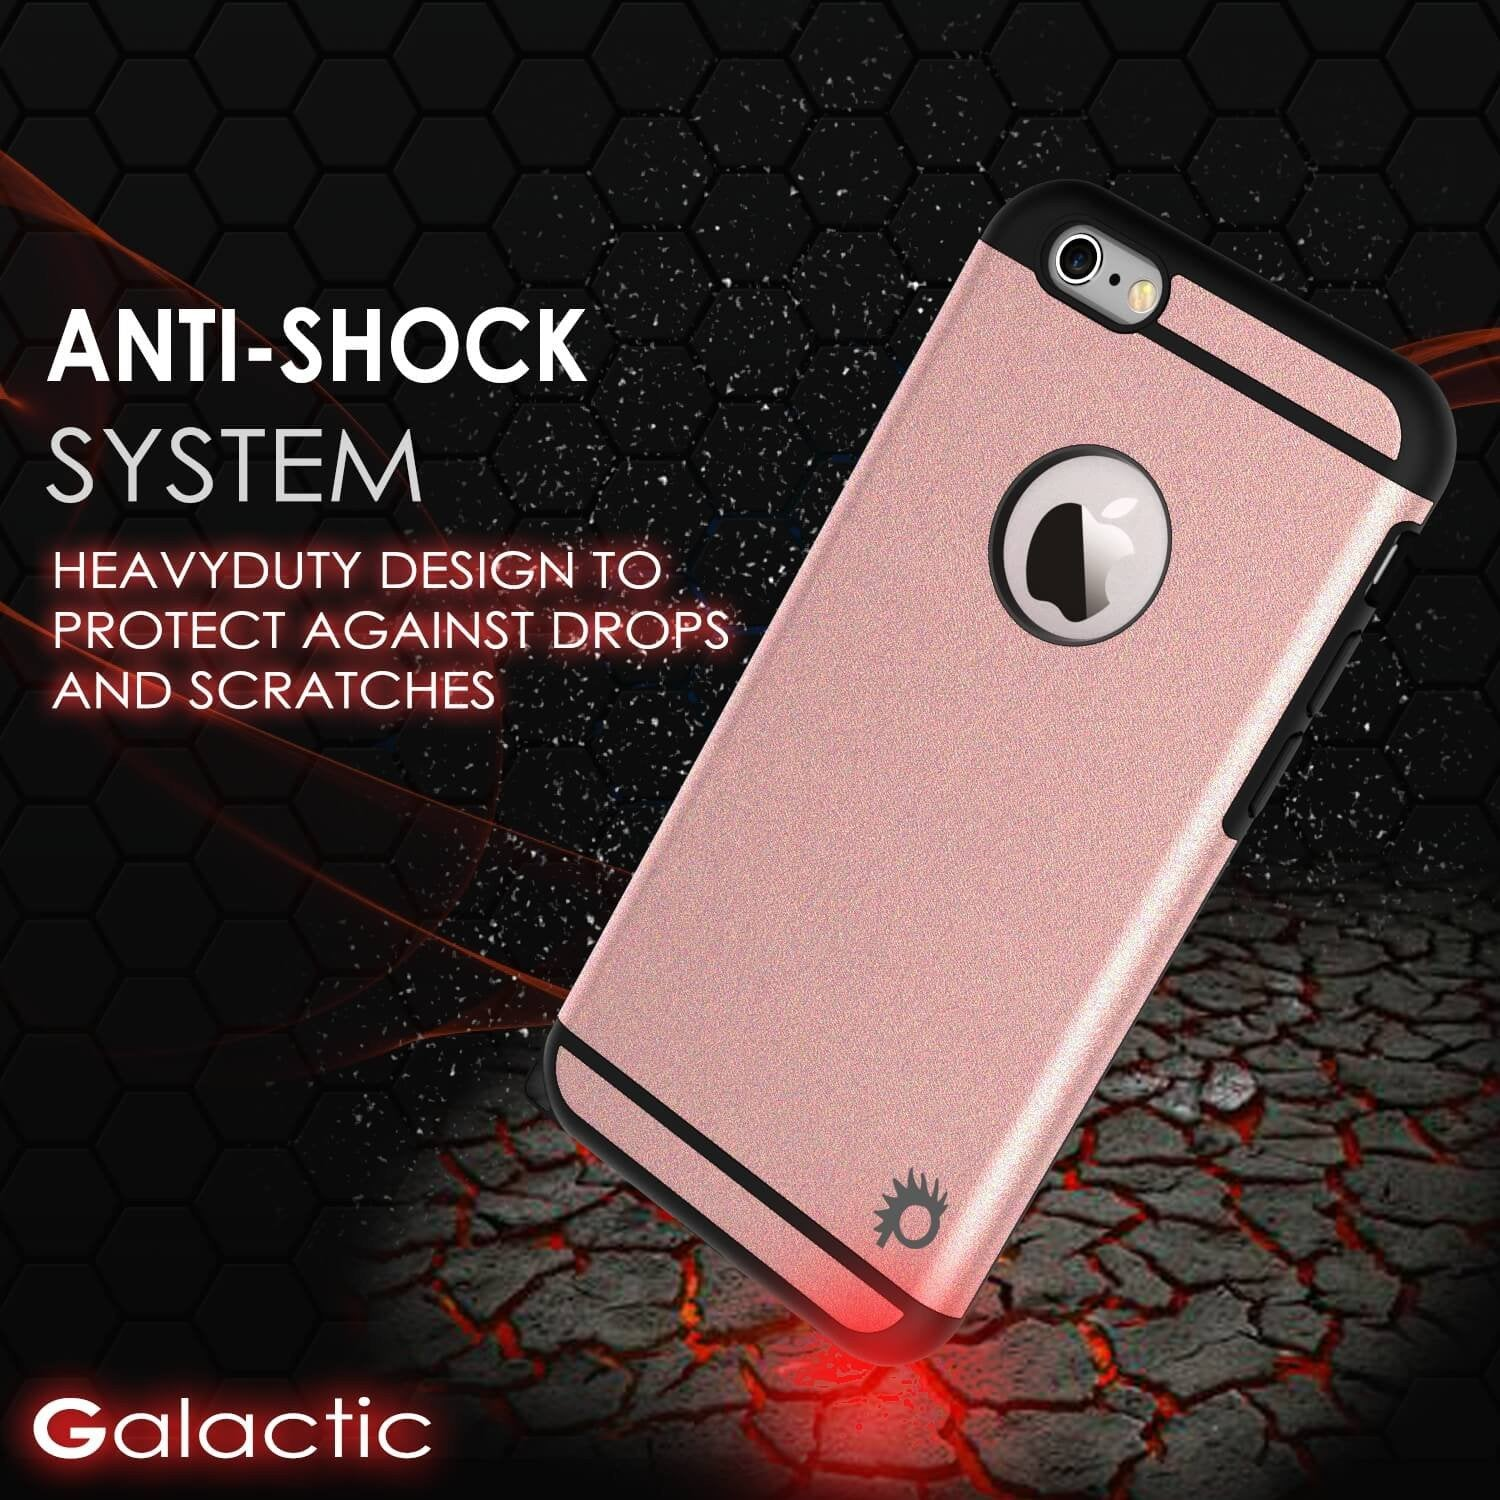 iPhone 5s/5 Case PunkCase Galactic black Series Slim w/ Tempered Glass | Lifetime Warranty